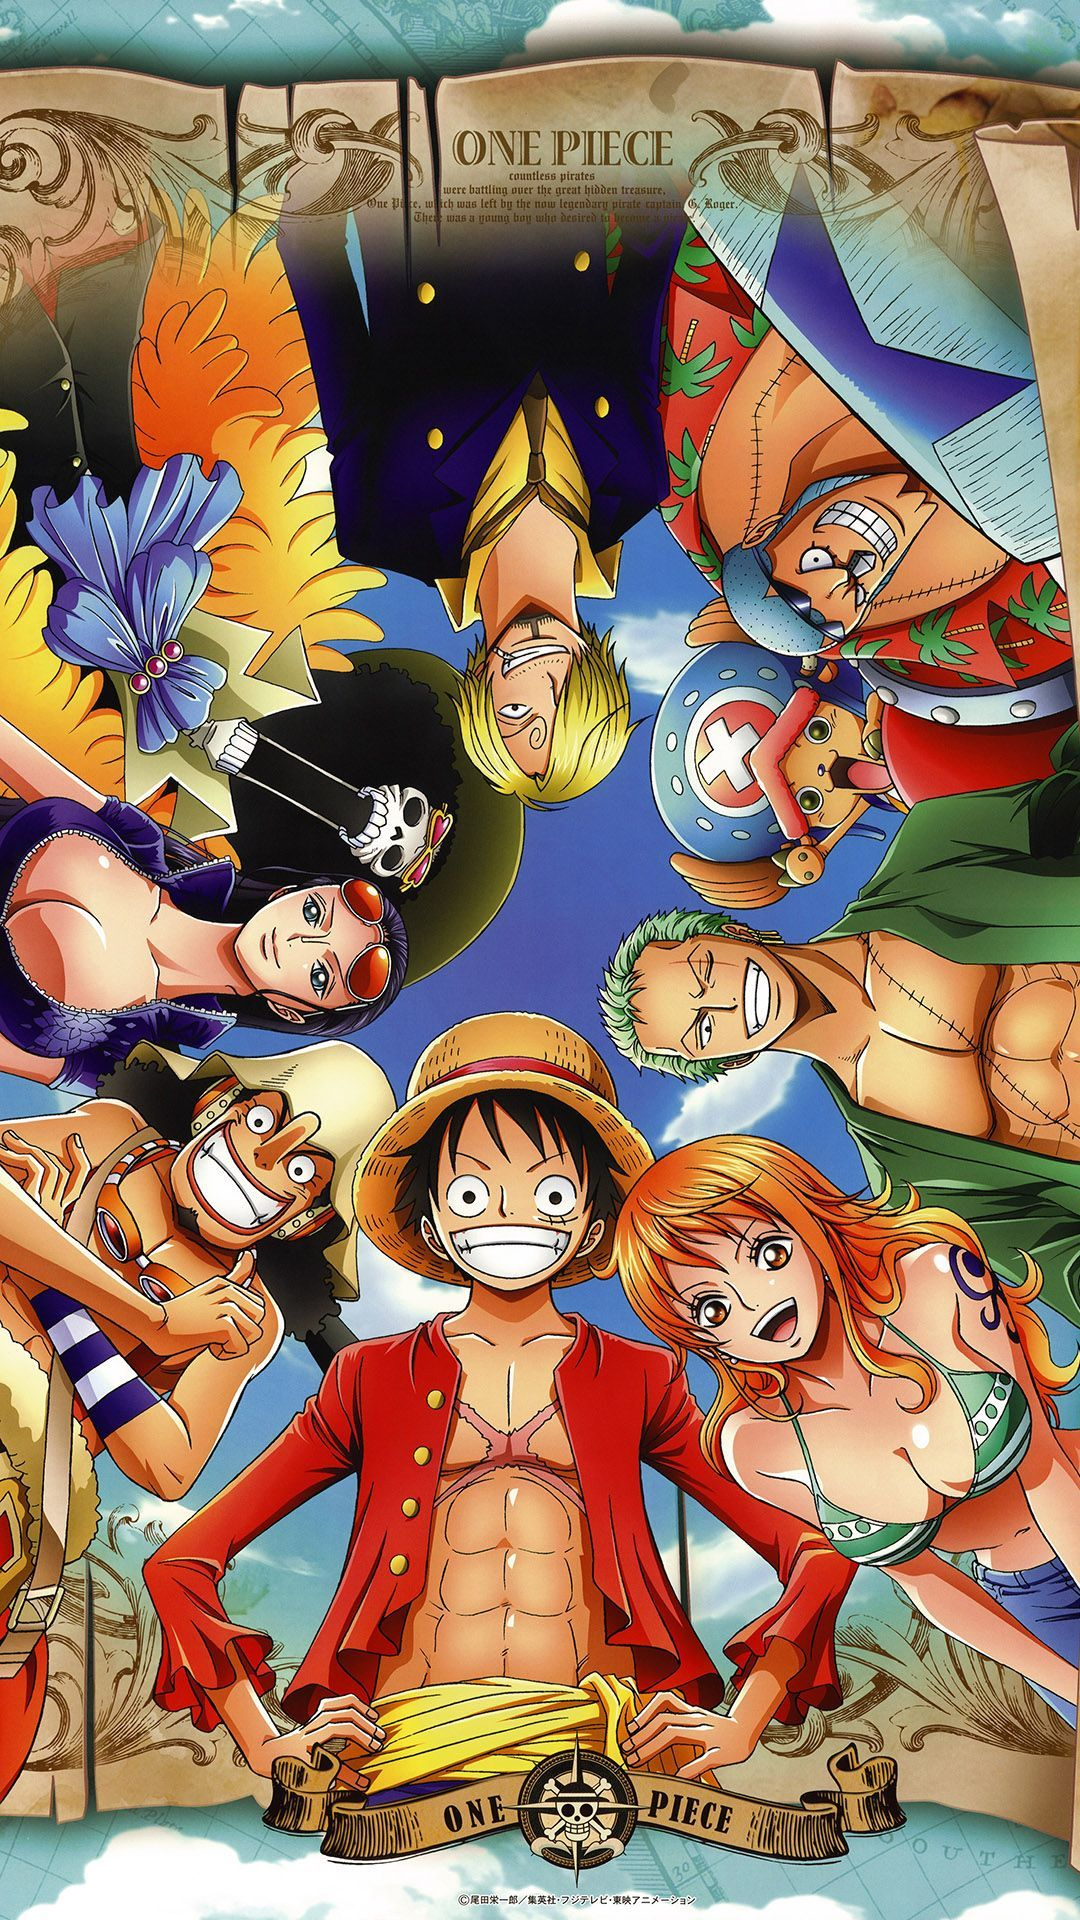 One Piece anime visual haruhichan.com One Piece anime